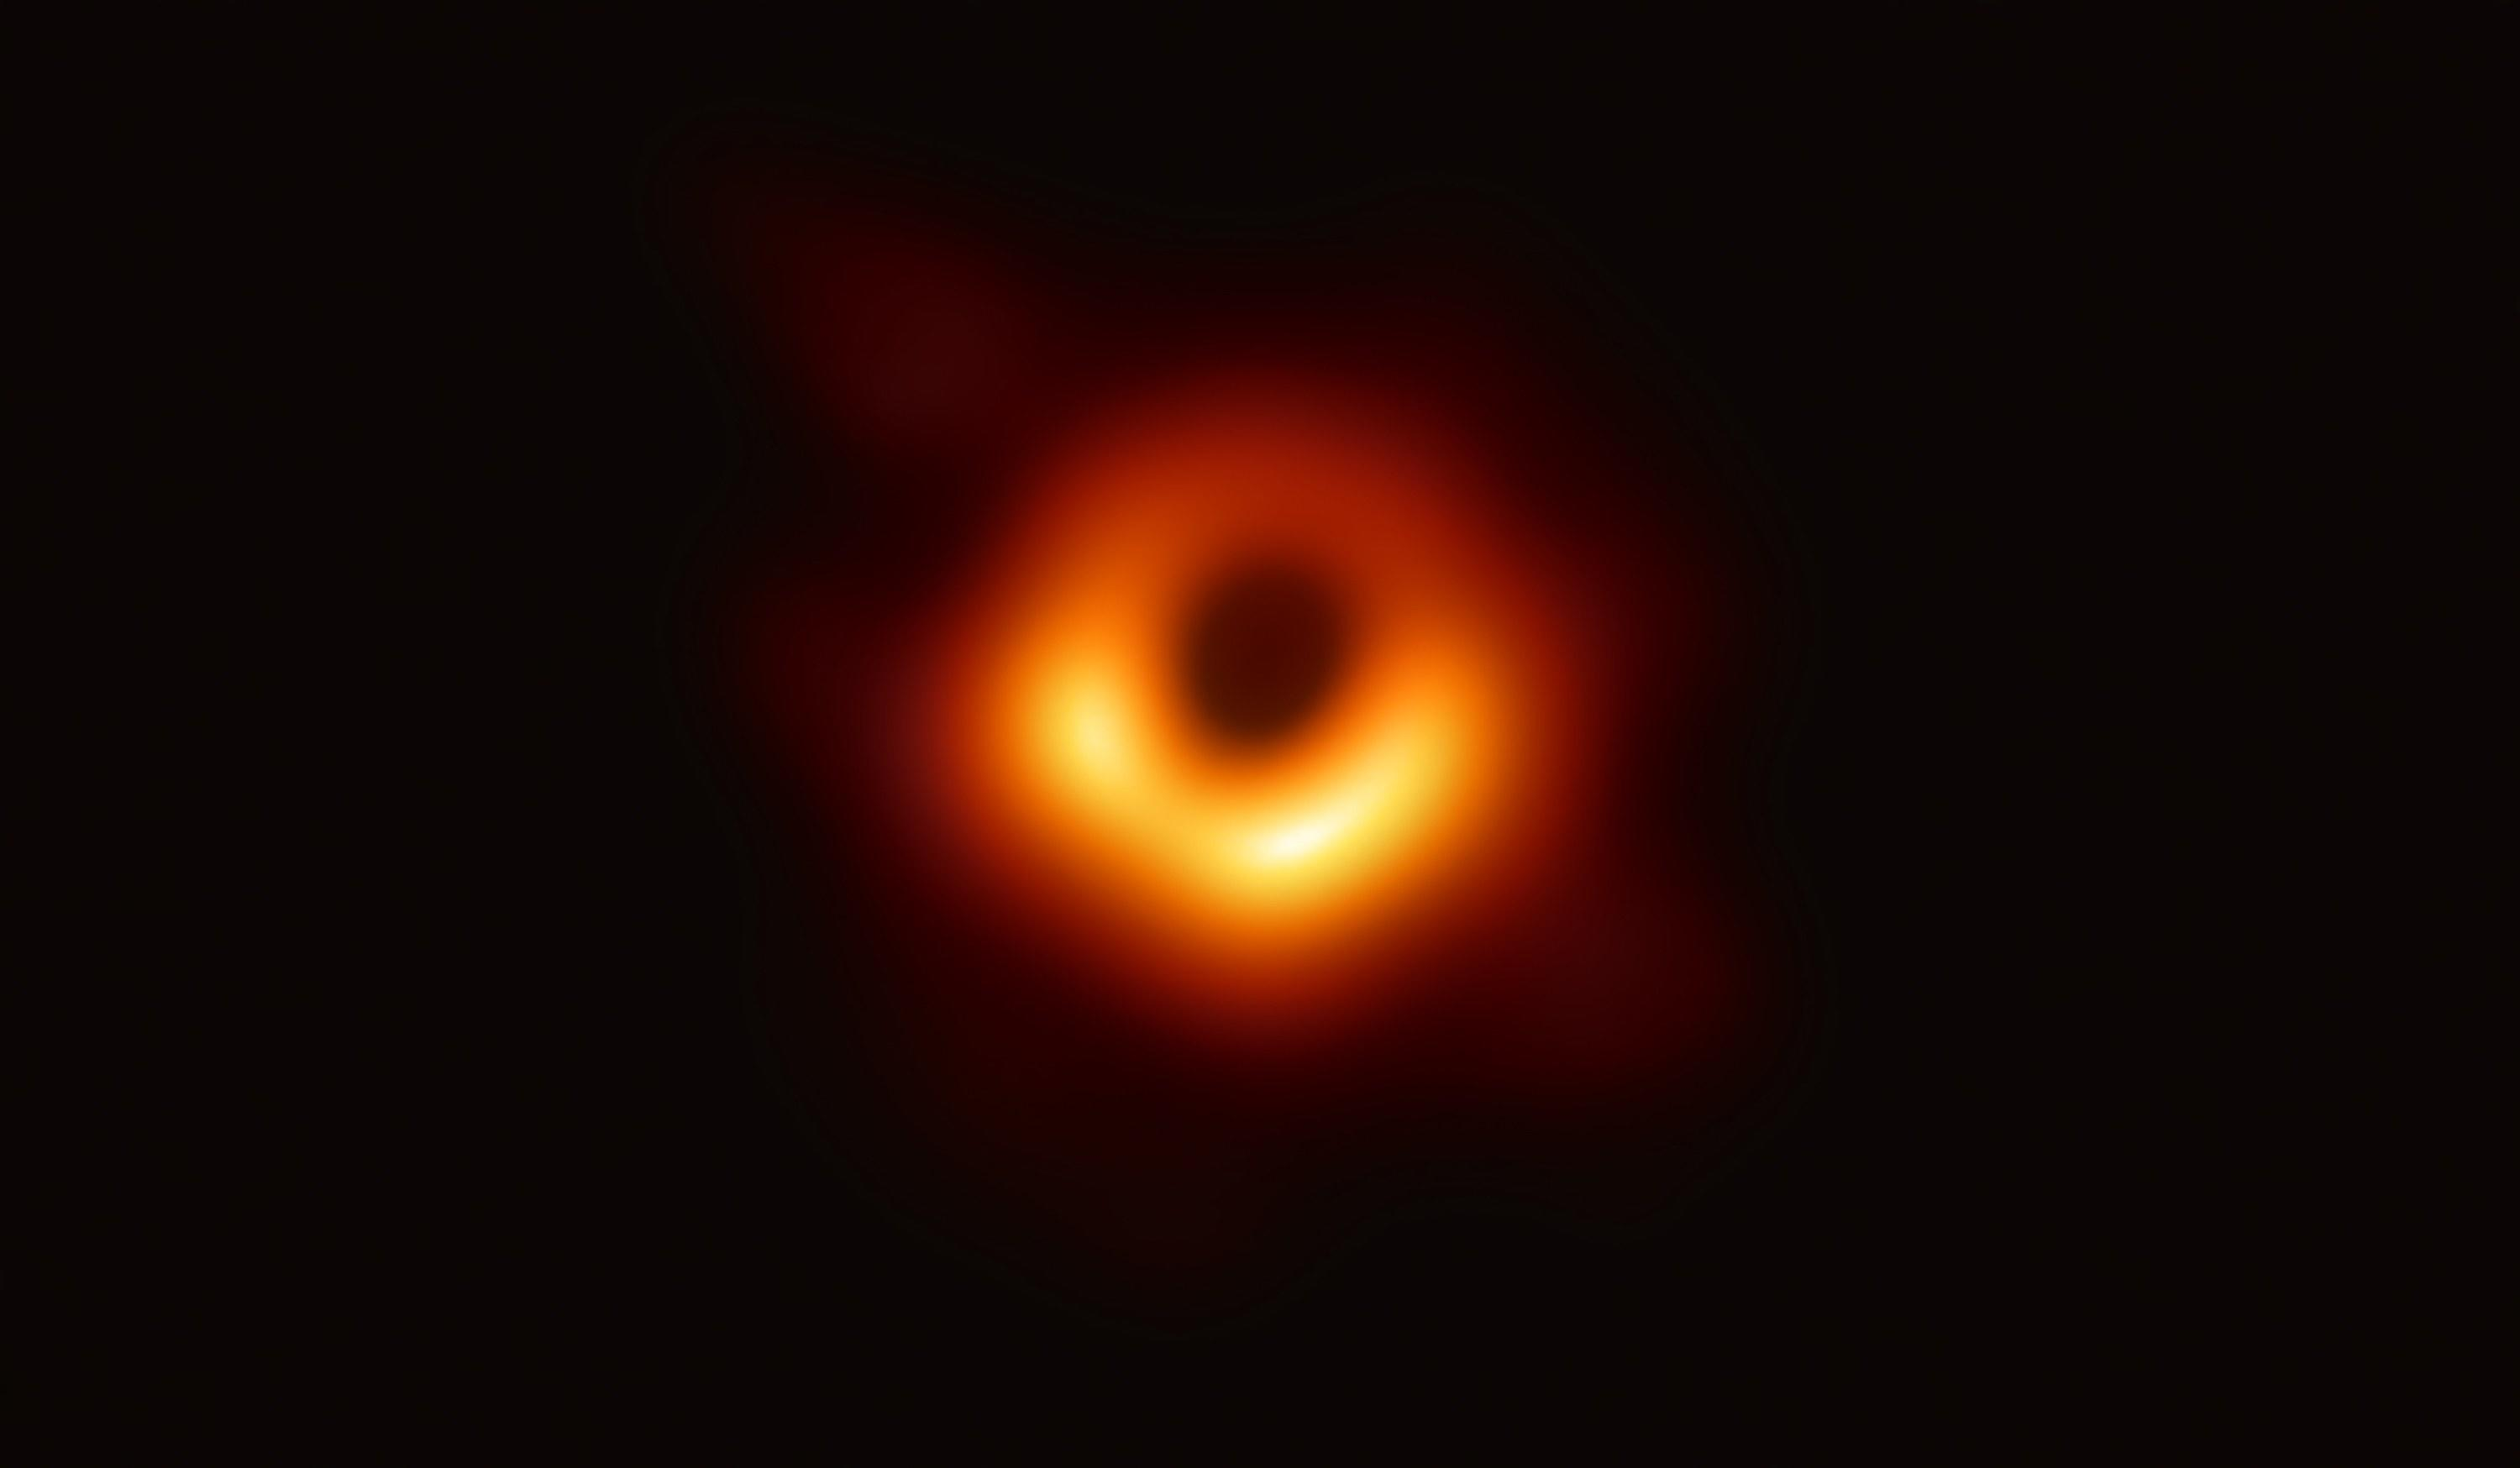 Is the Black Hole a Glazed Donut? And Other Deep Thoughts About the Universe